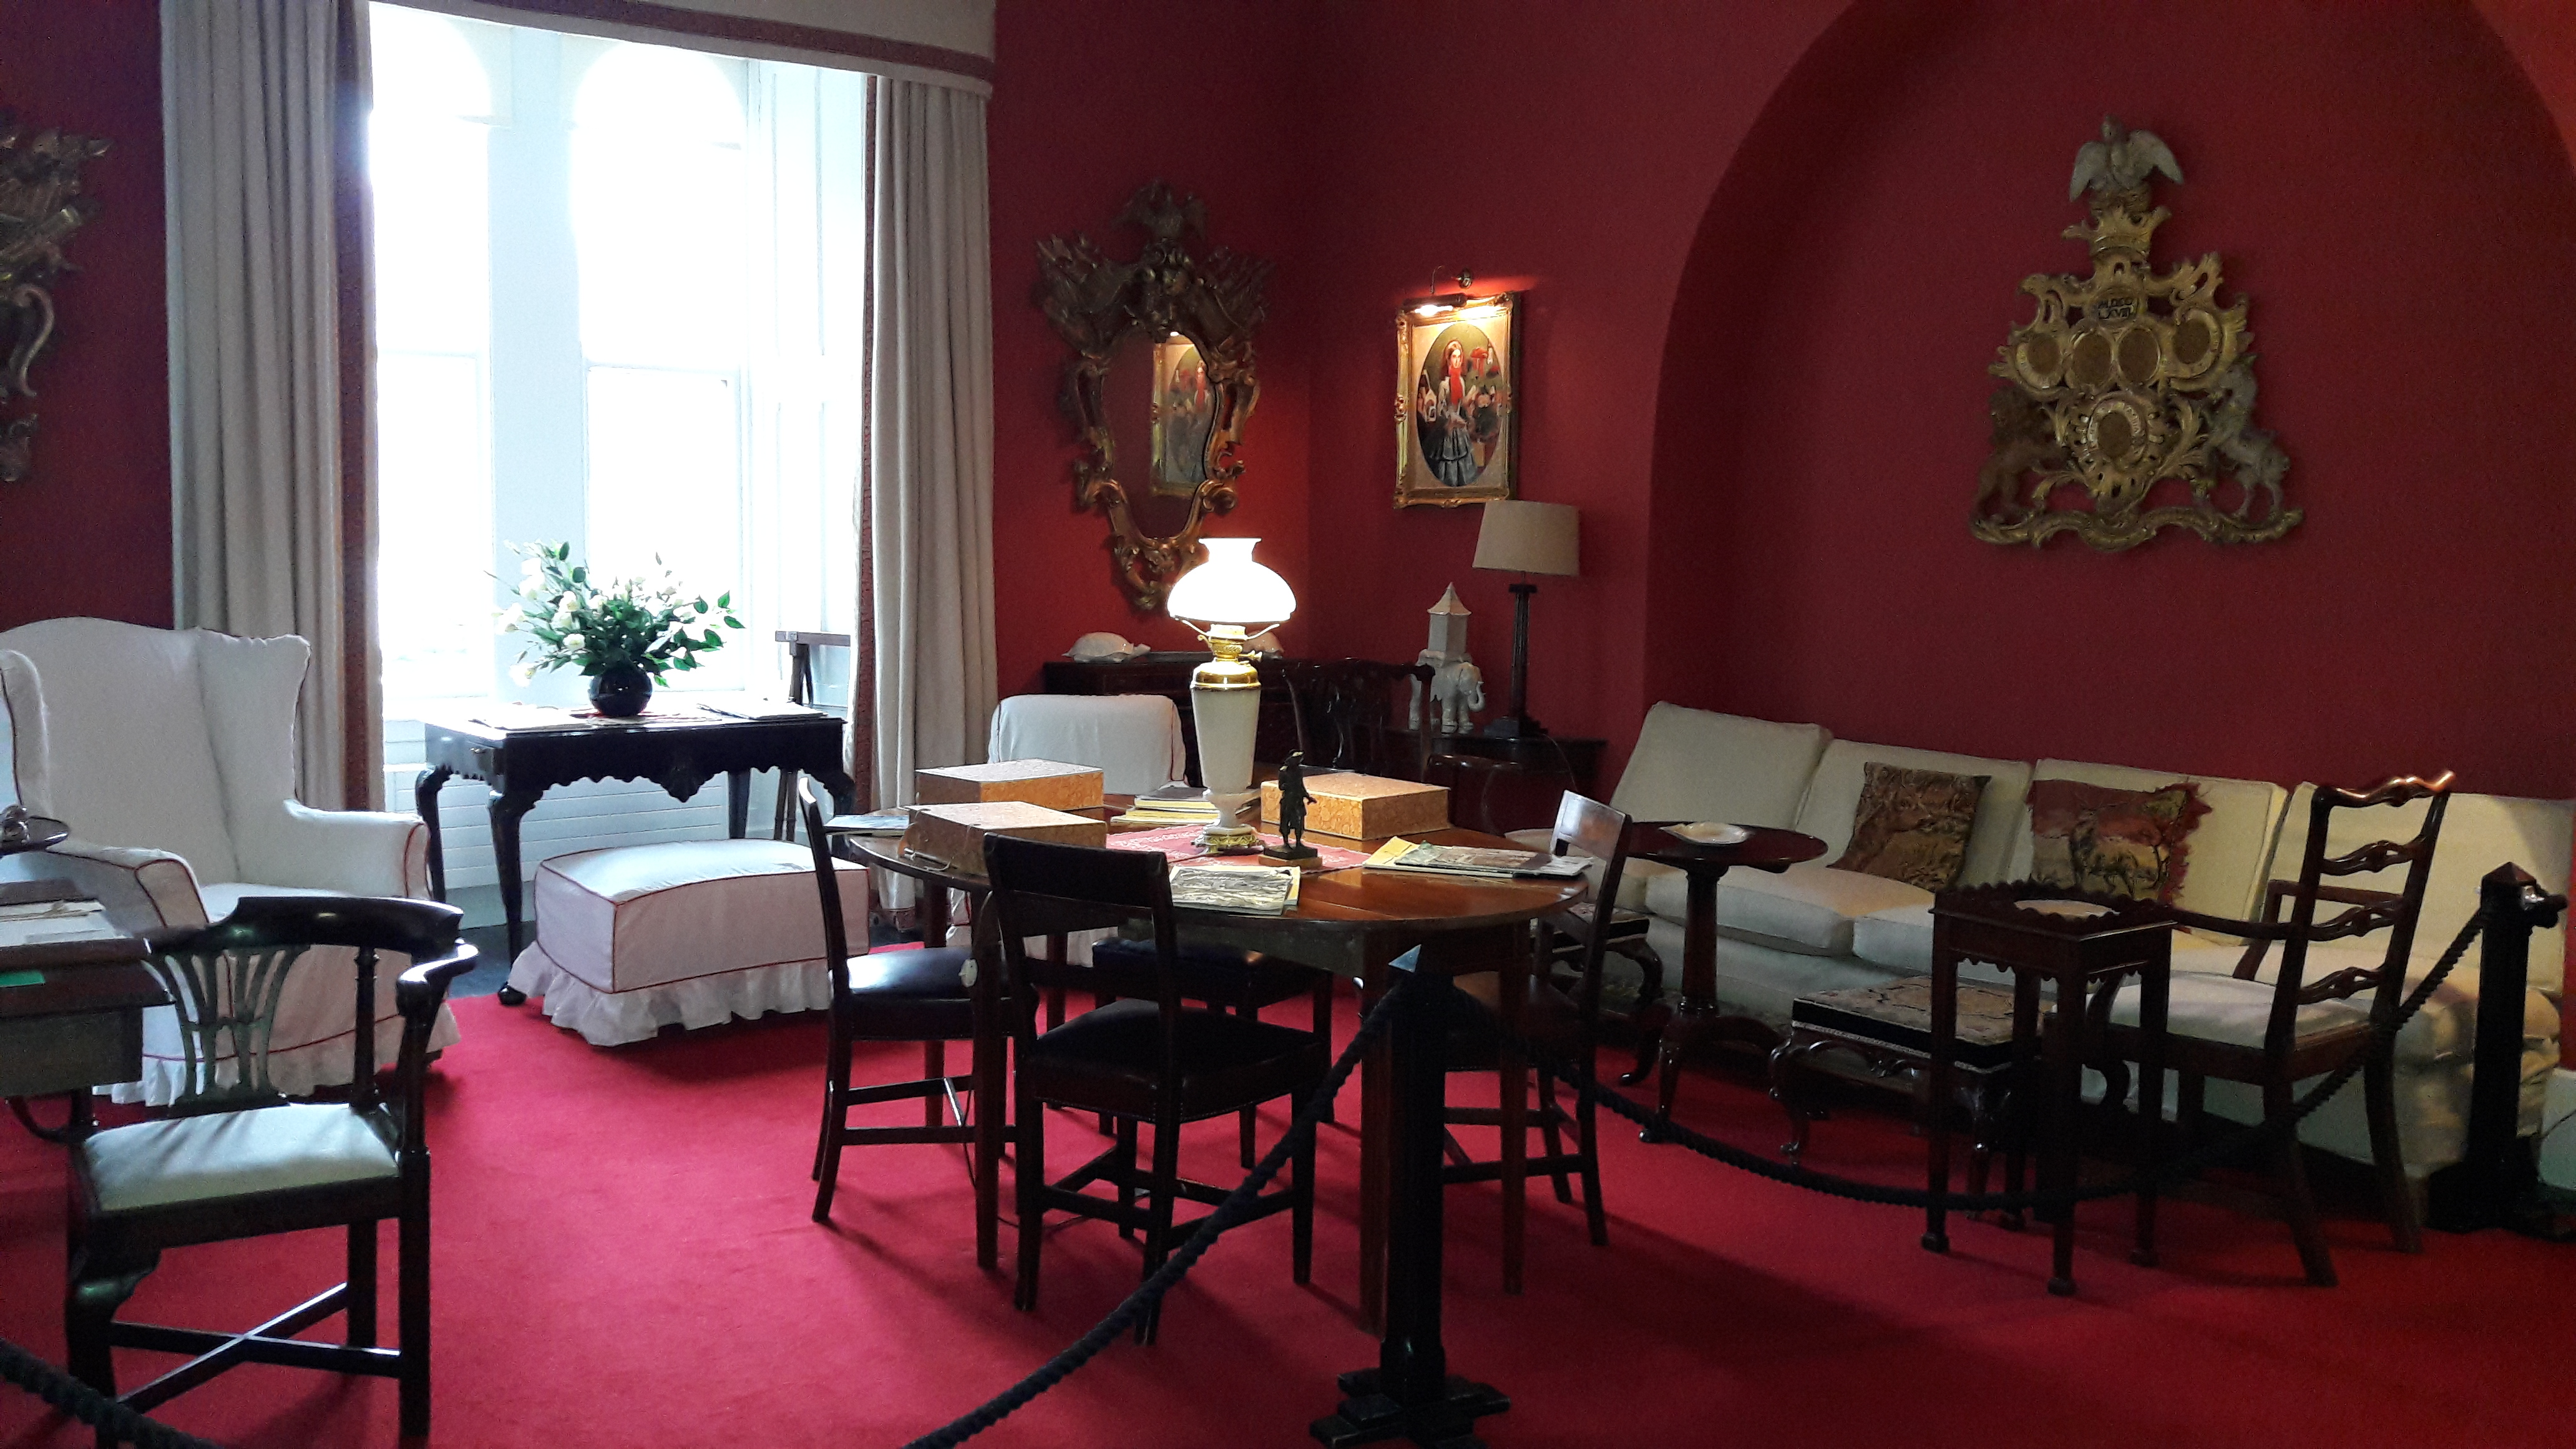 Red Room in Glenveagh Castle